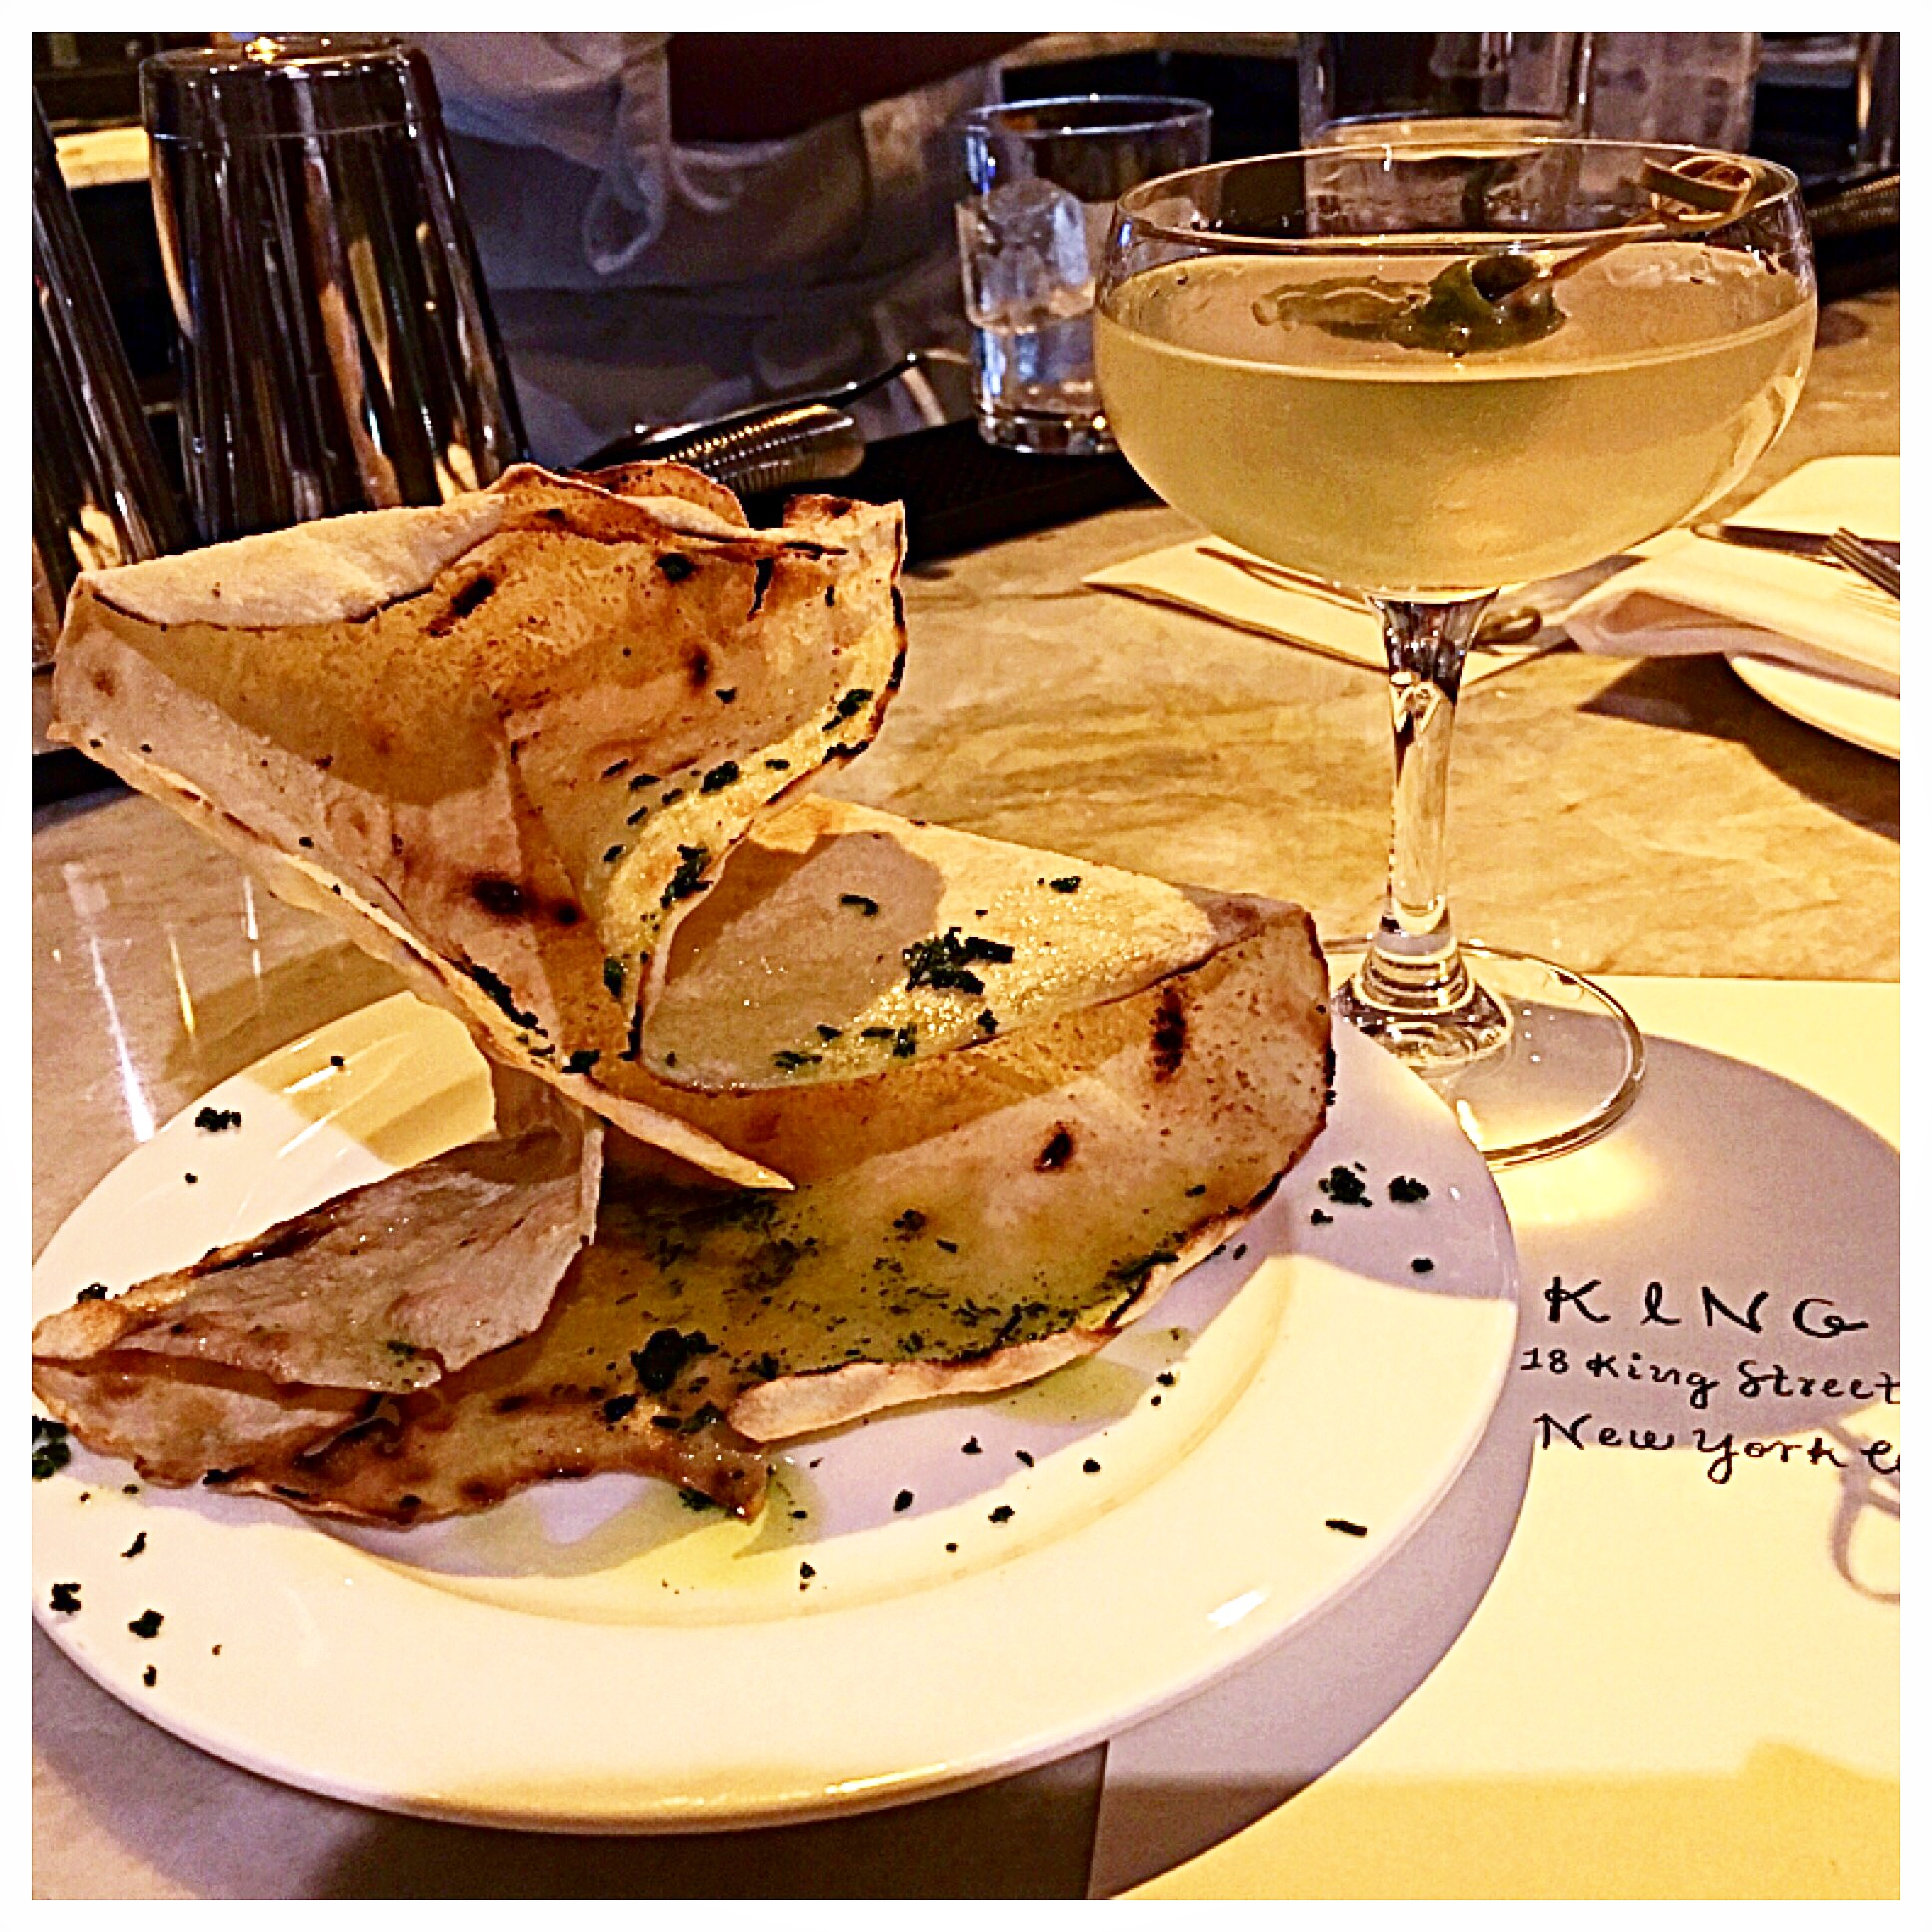 """This Sardenian style crispy cracker with olive oil and herbs is known as a """"Carta de Musica"""" (music paper bread). It was a great start to the meal accompanied by theA++ dirty martini.."""